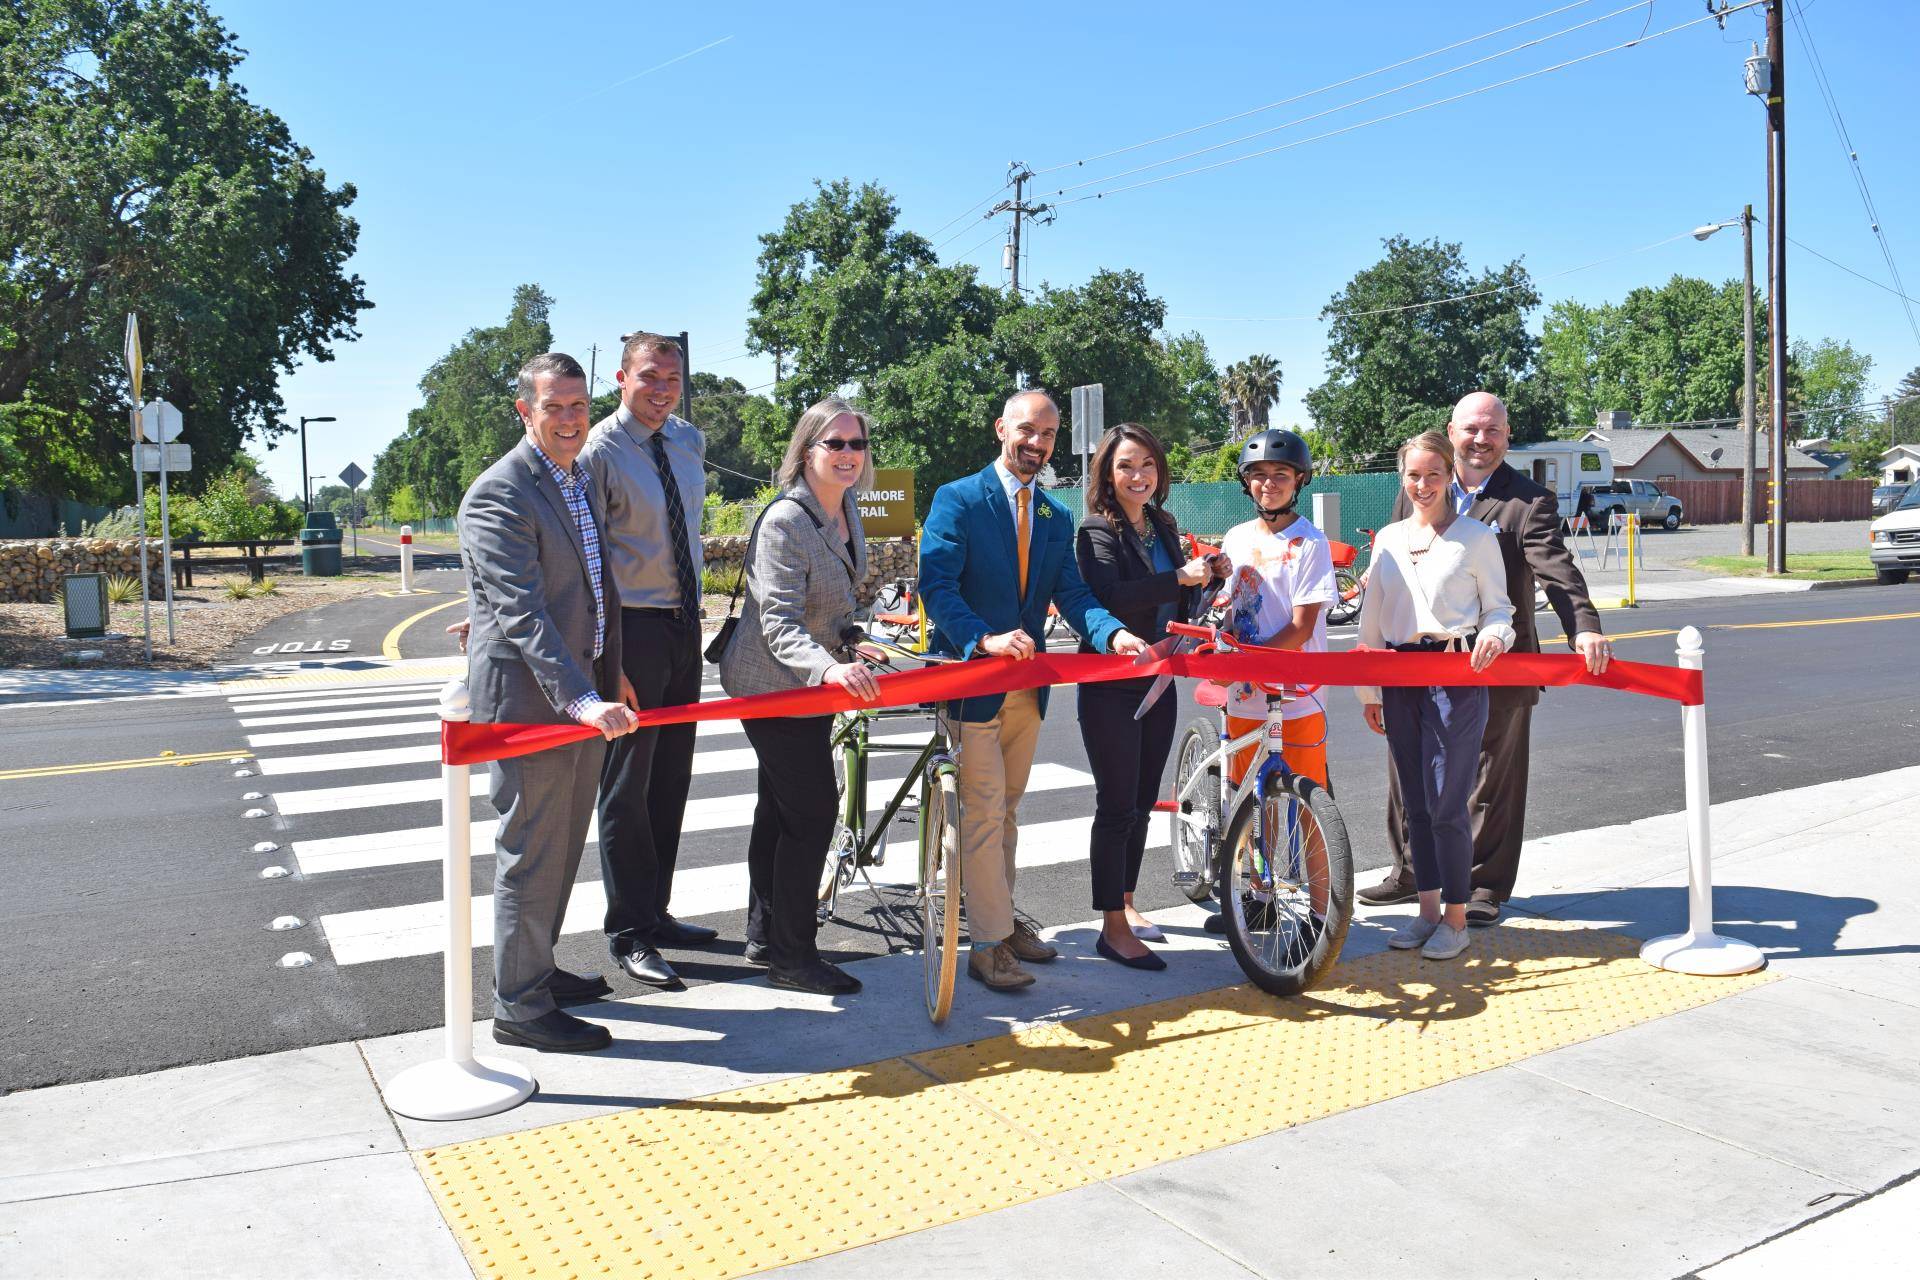 Ribbon cutting of sycamore trail new segment